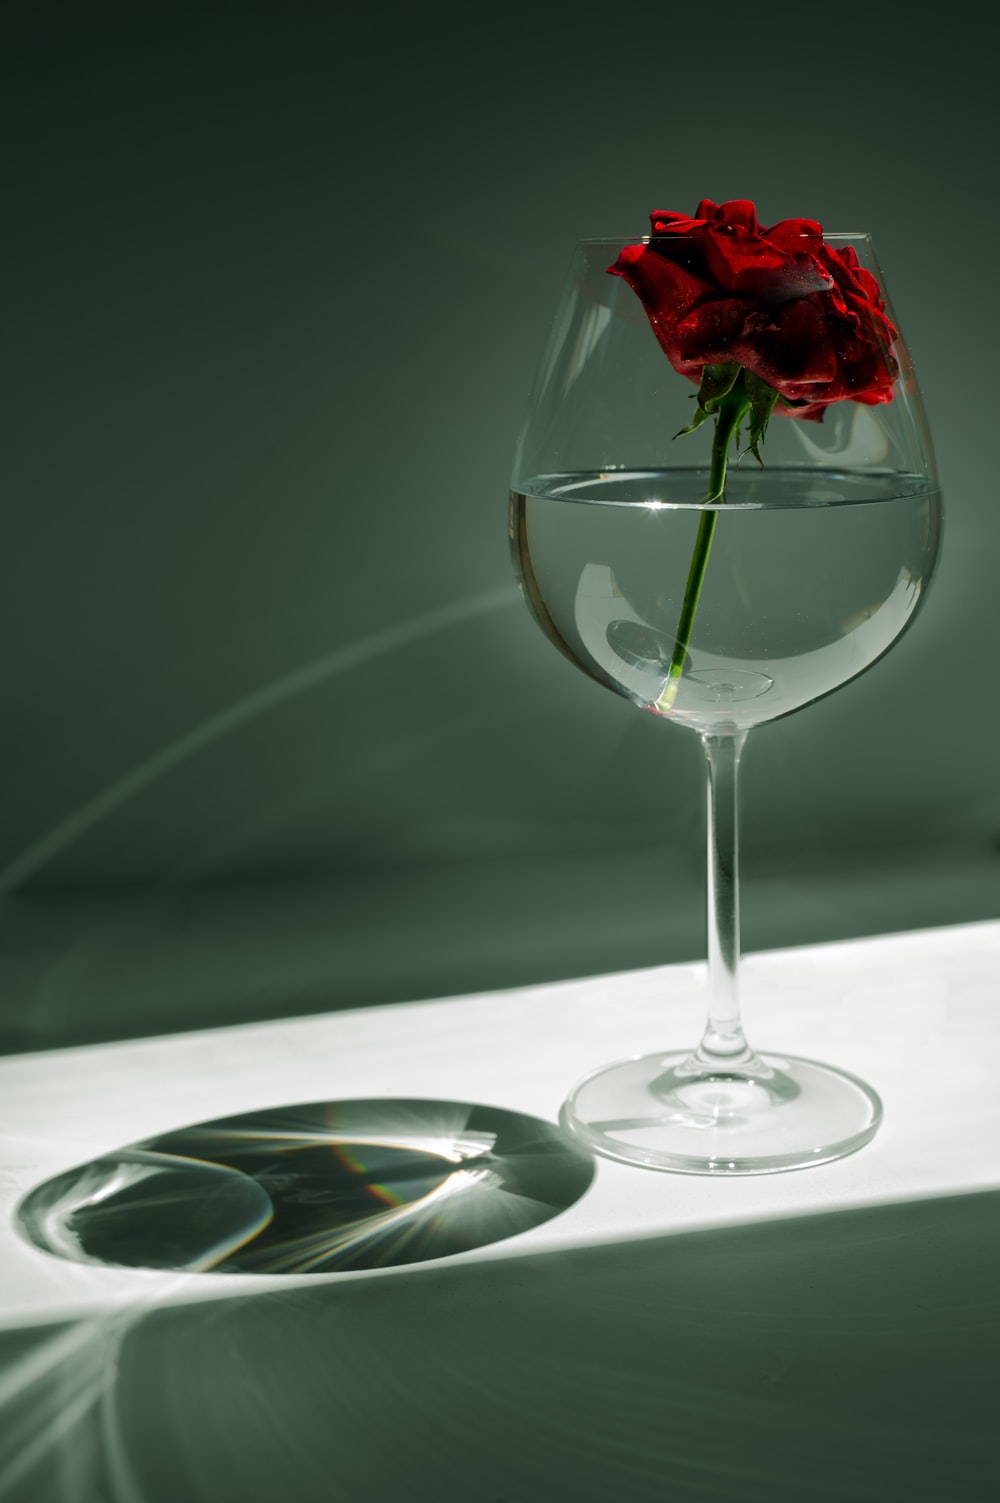 red rose in clear wine glass